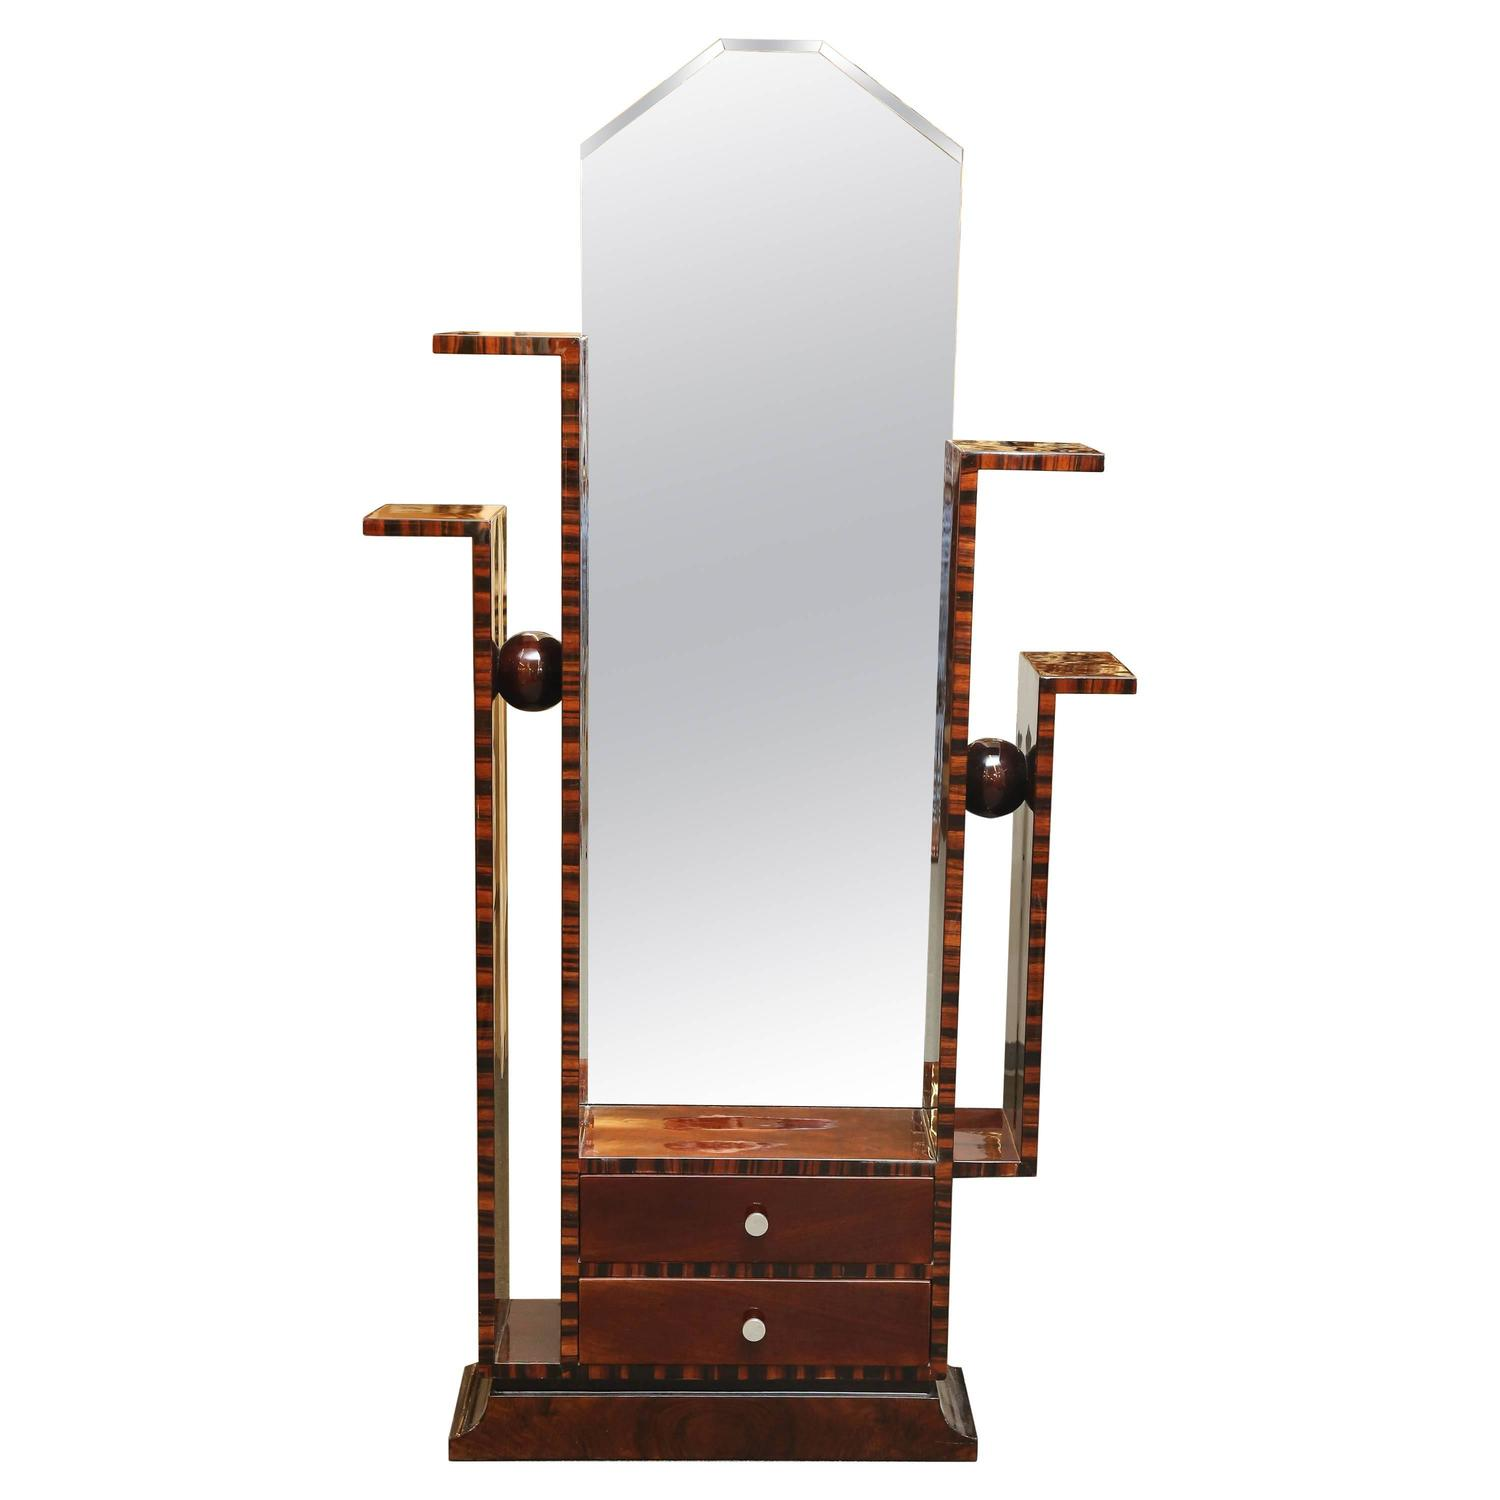 Top 28 floor mirror on sale discount wood floor for Floor length mirror for sale